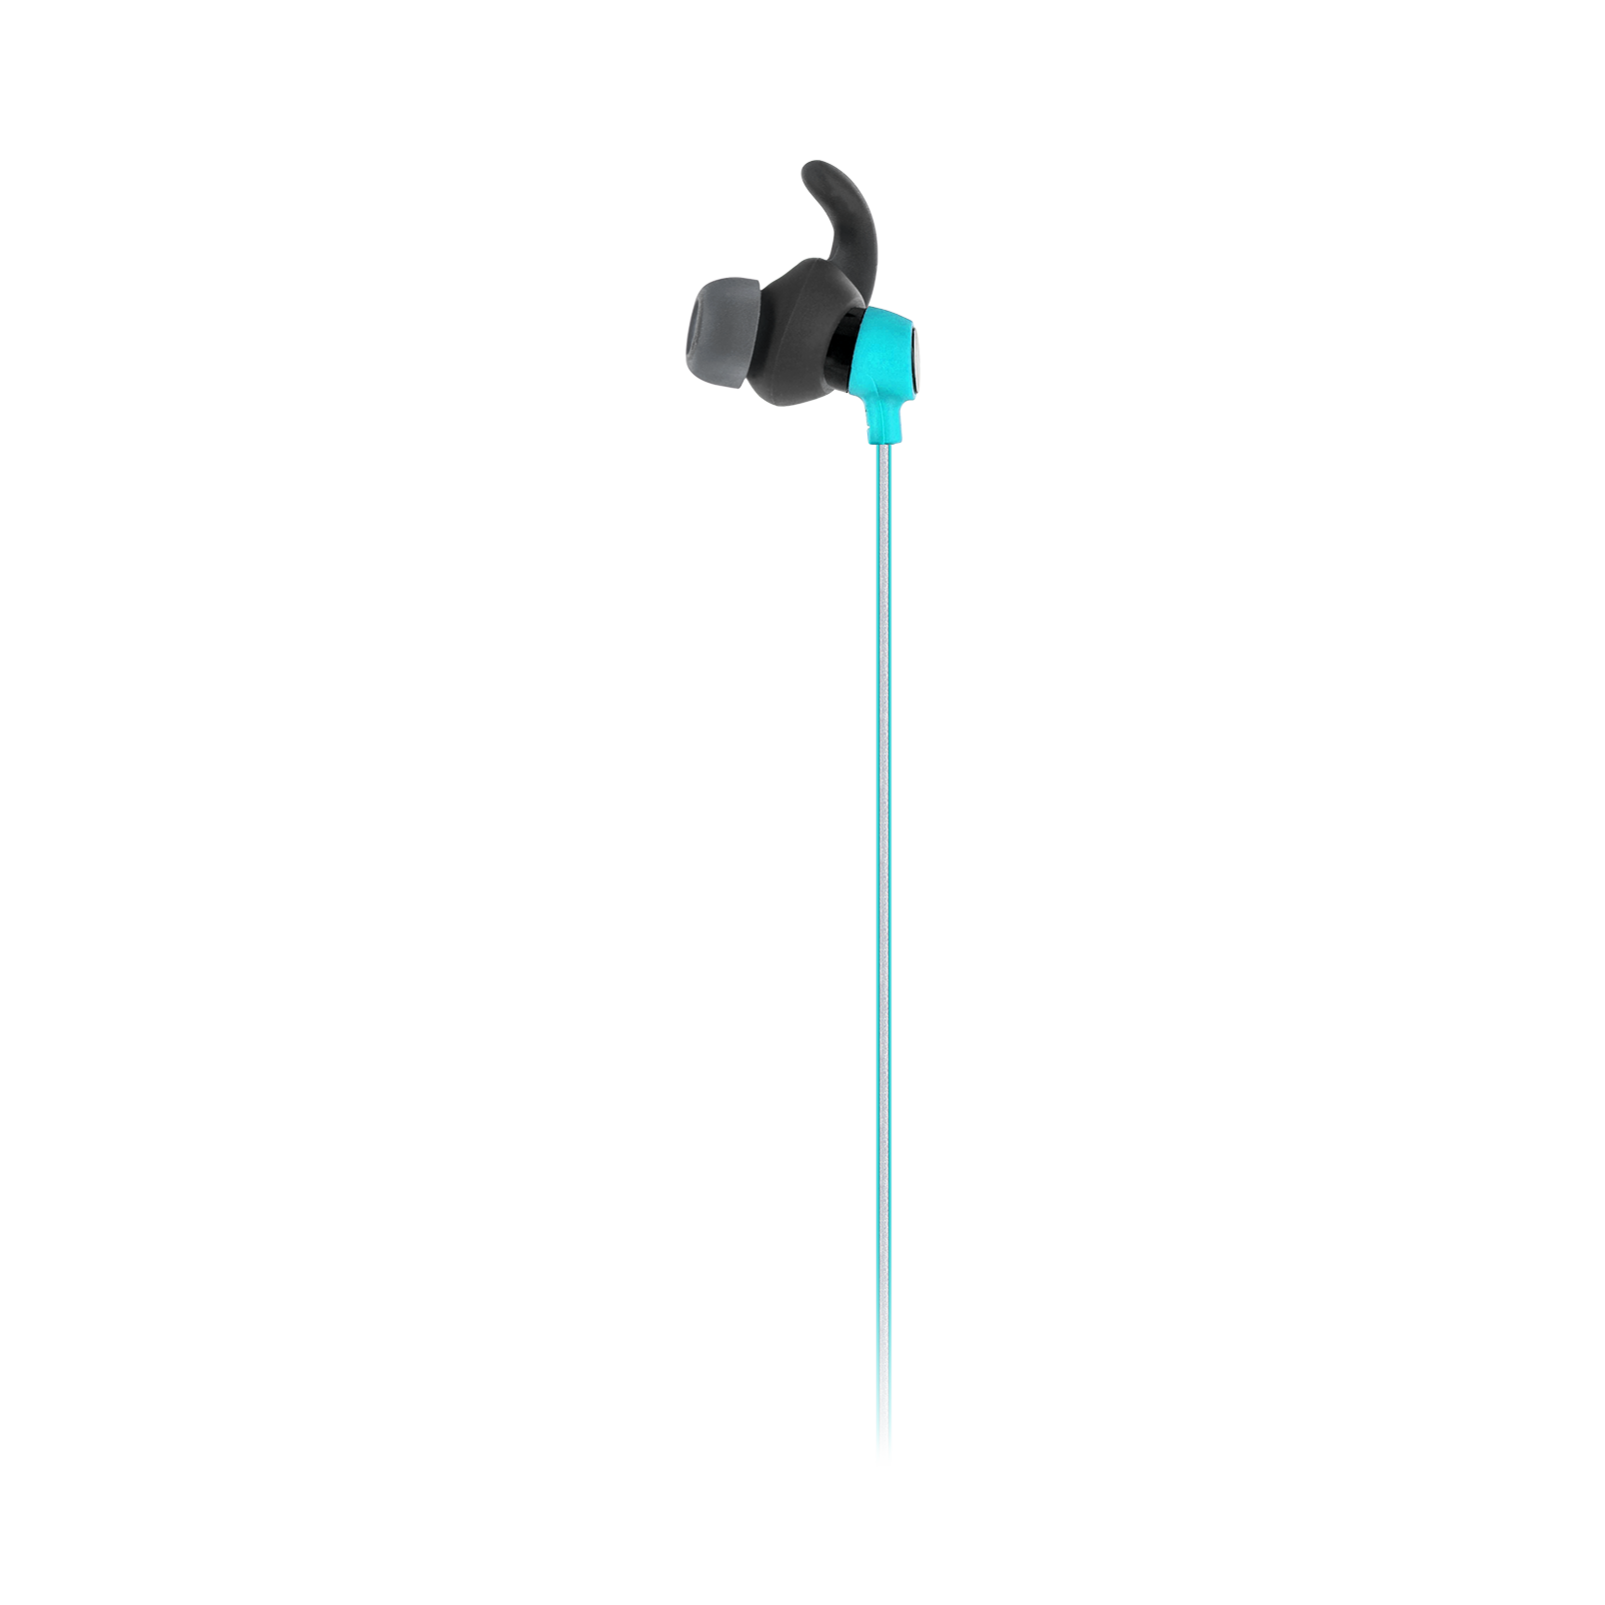 Reflect Mini - Teal - Lightweight, in-ear sport headphones - Detailshot 5